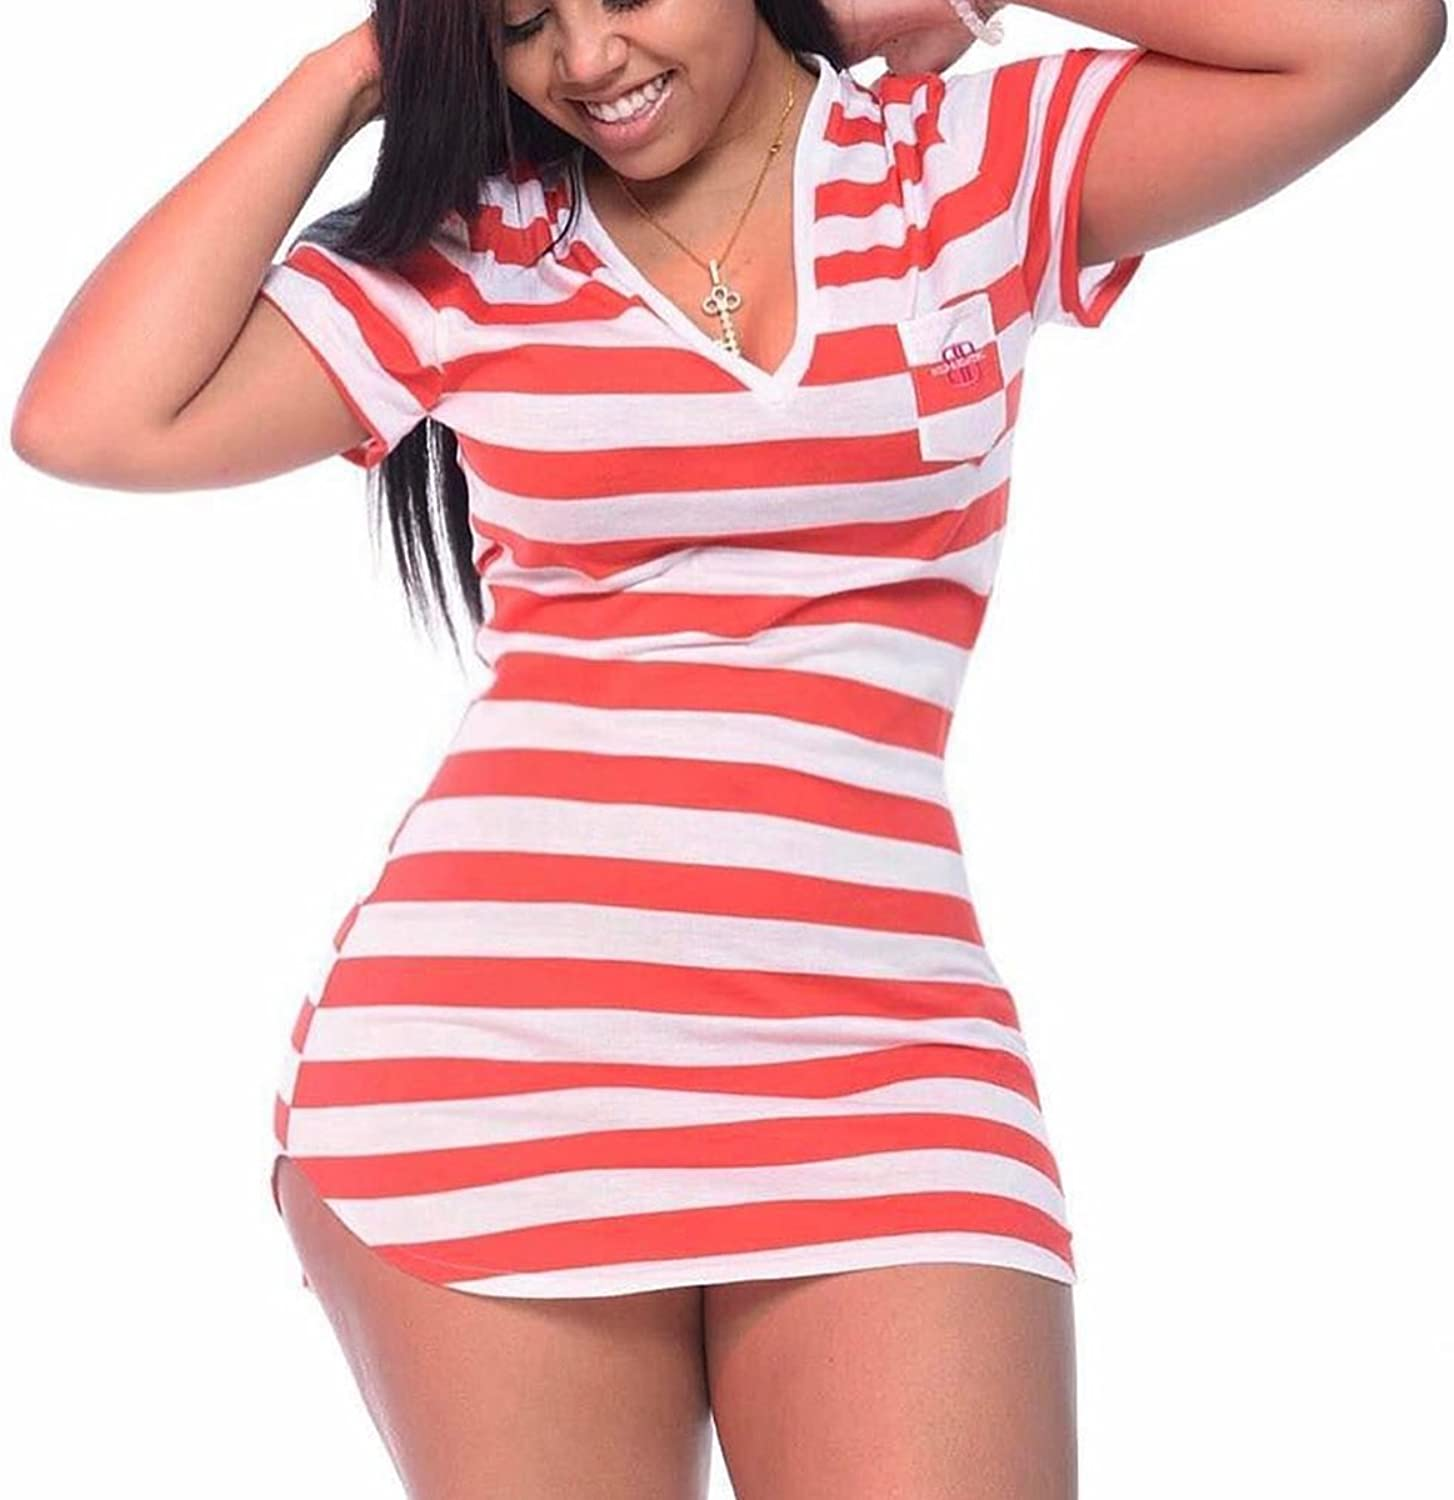 Lady's Dress Lady's Dress Stripes Short Sleeve V Neck Casual Short Dress 2018 New Spring And Women's Autumn Daily Wearing Temperament ( Size   S )